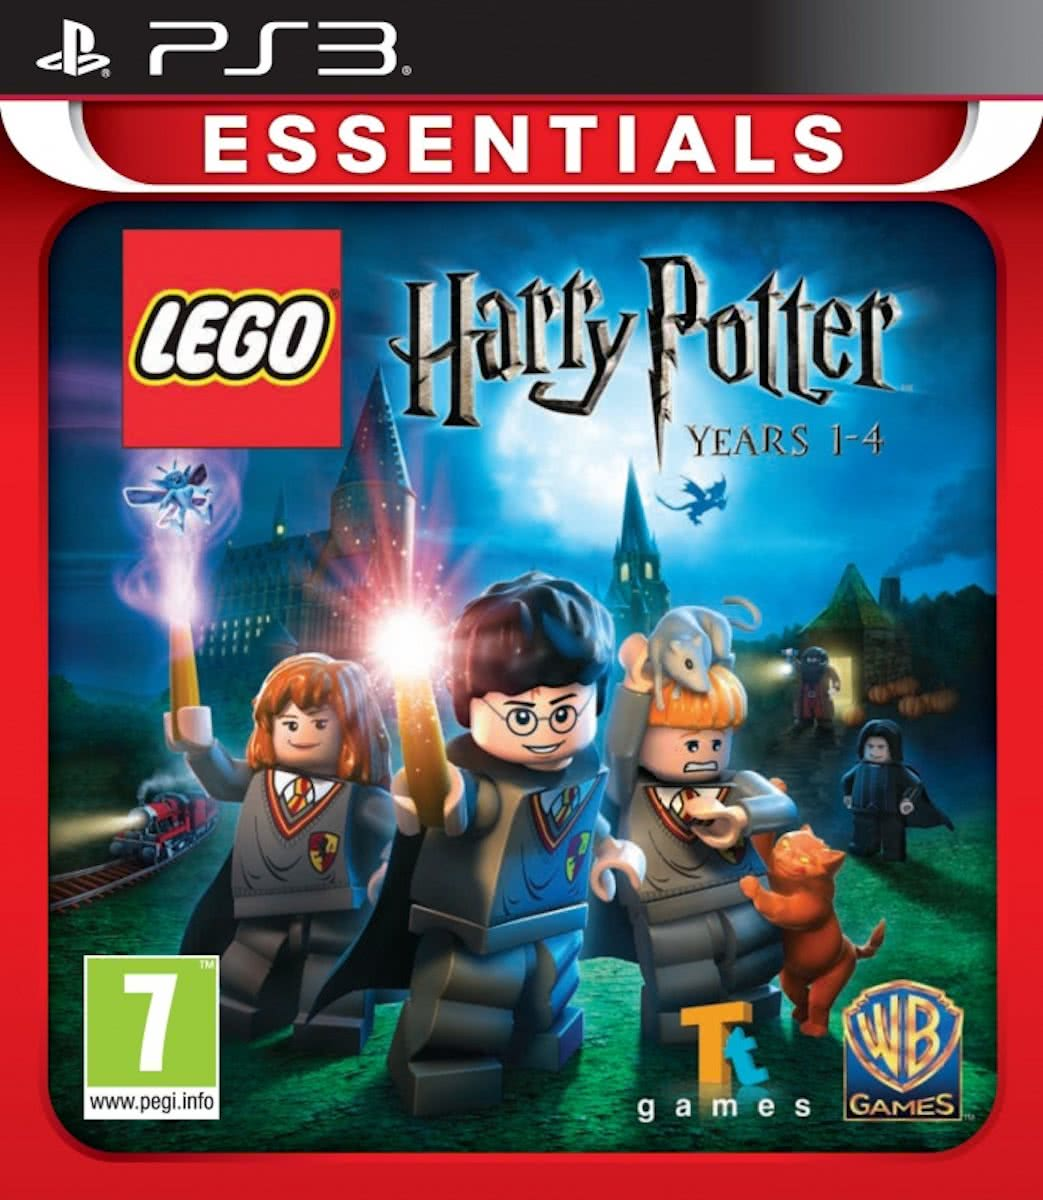 Lego Harry Potter Jaren 1-4 (essentials)